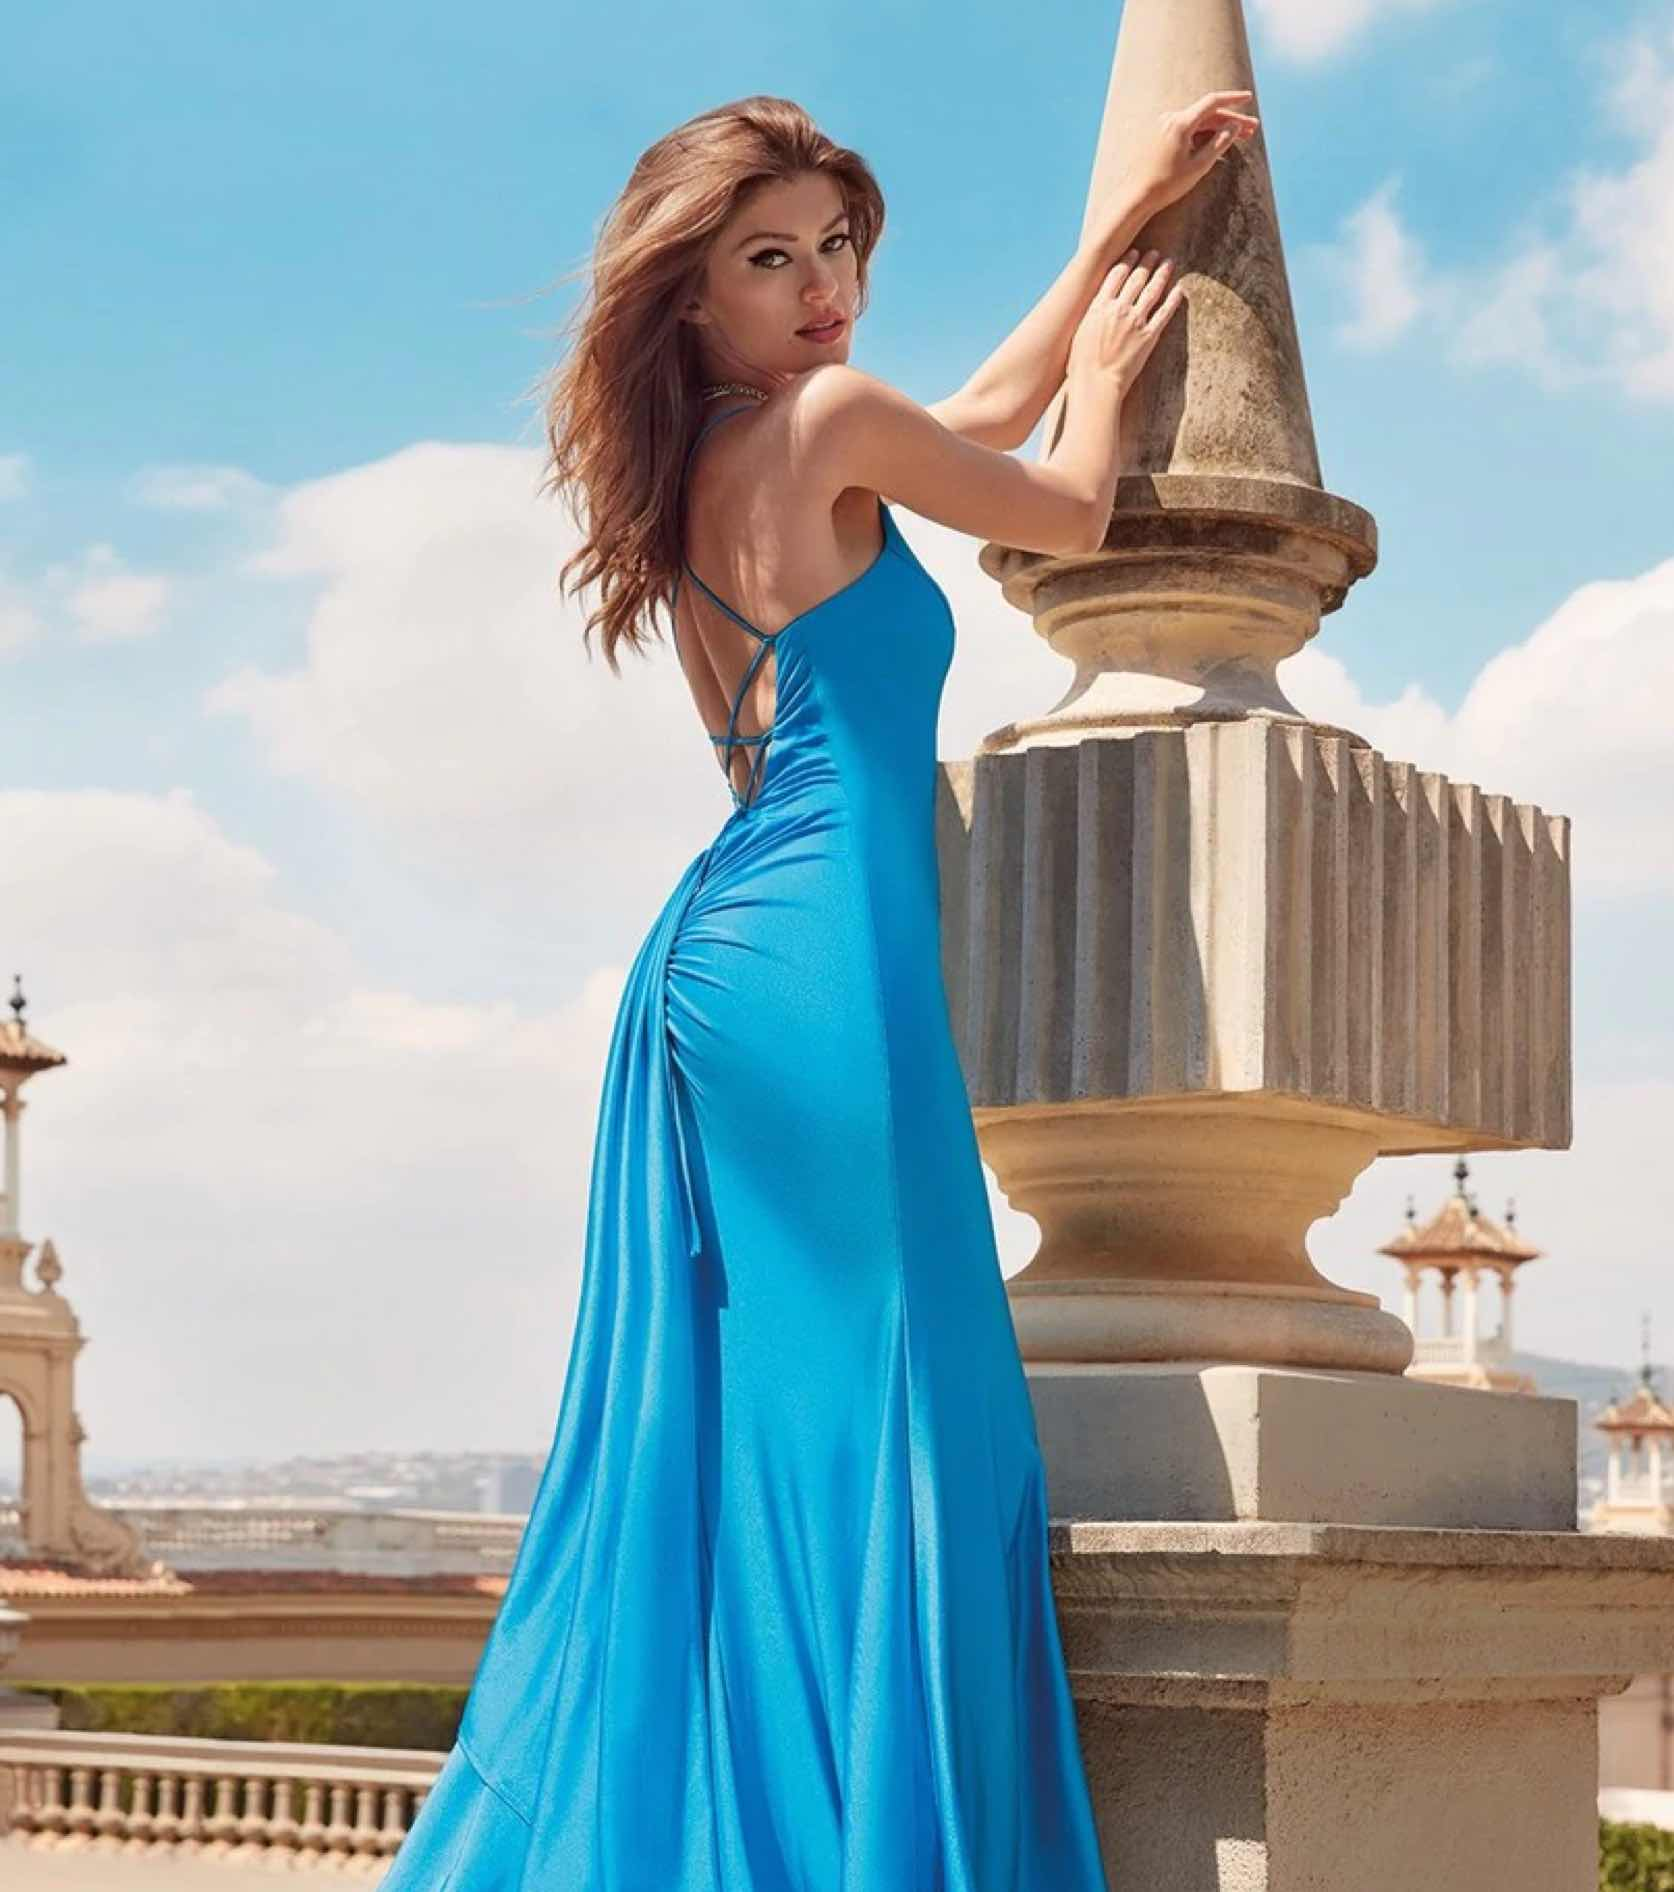 Model in blue Alyce Paris gown